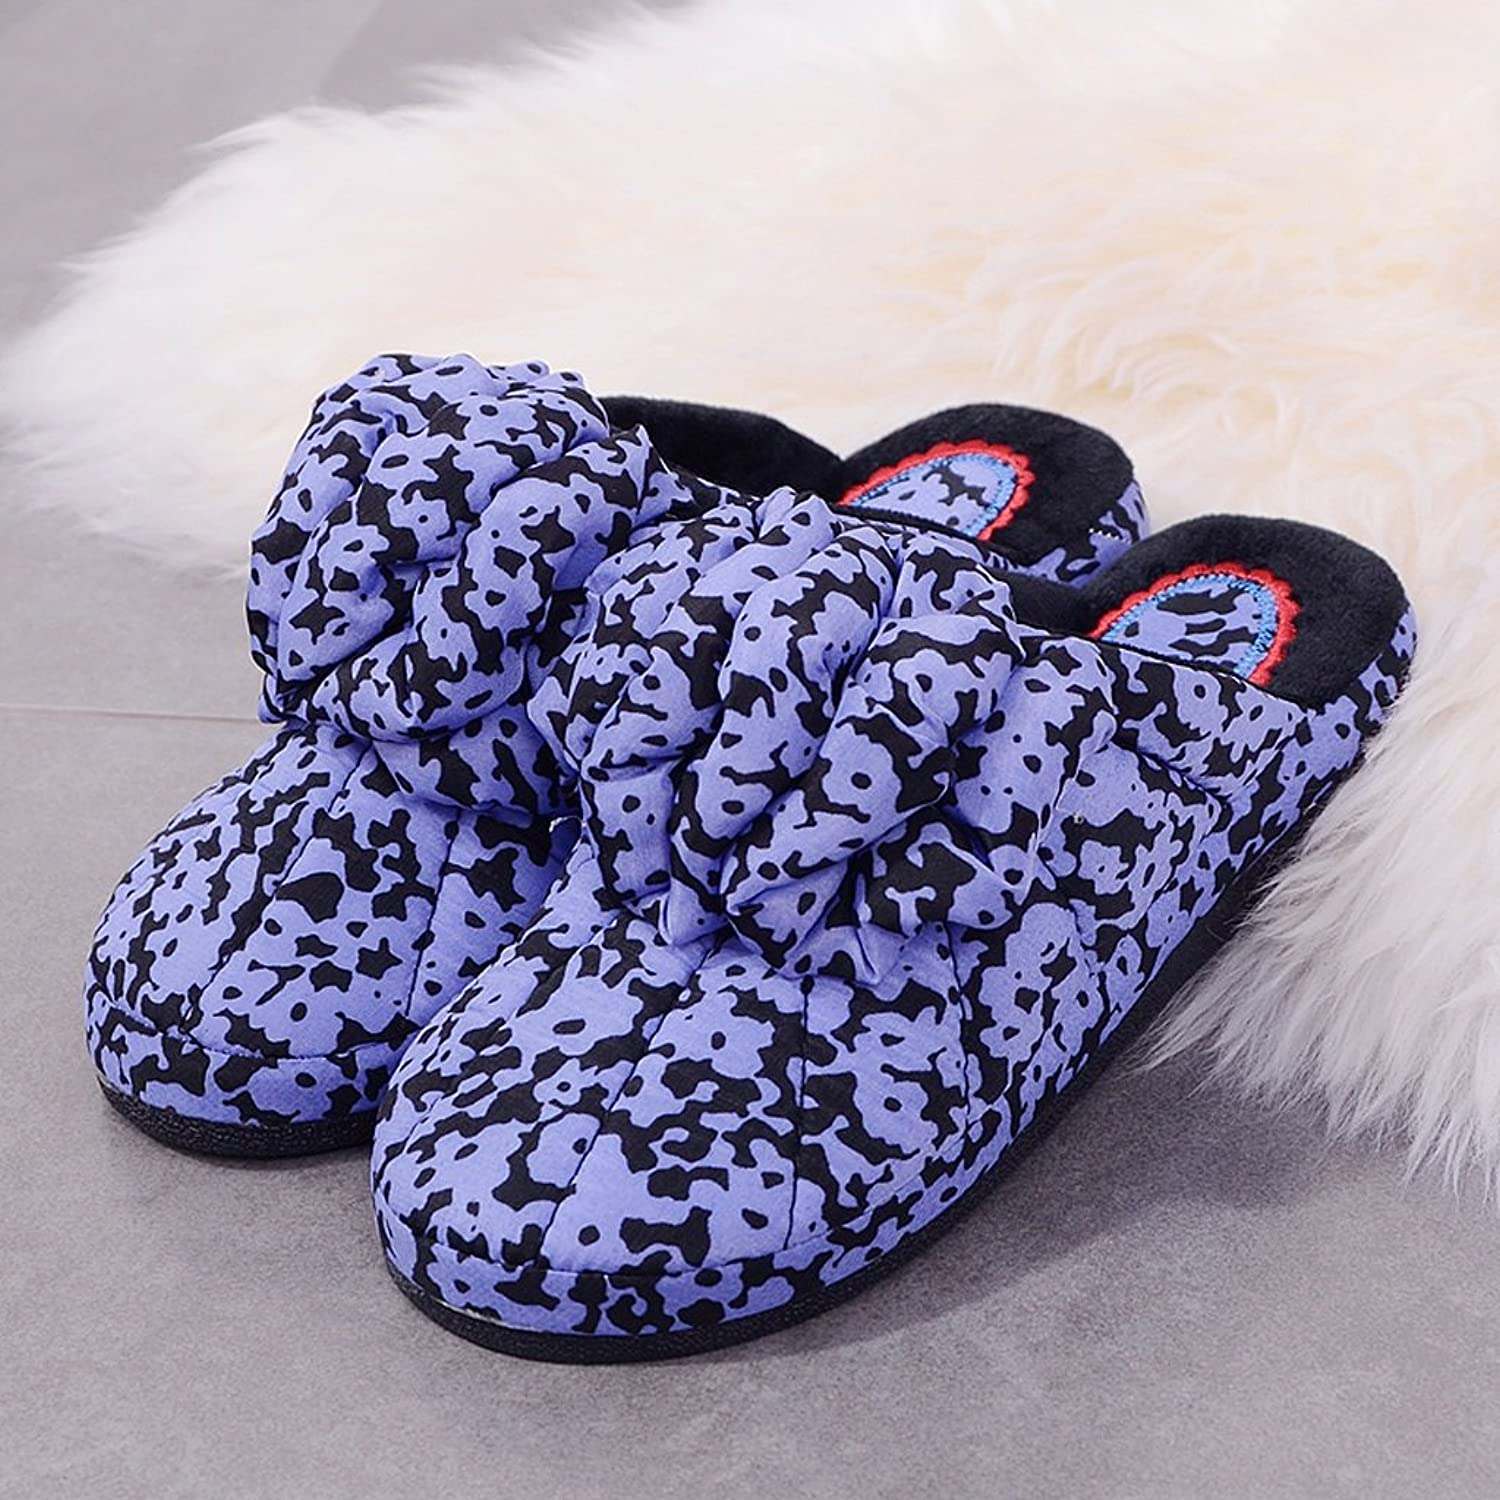 Female cotton slippers autumn and winter non-slip cute thick home indoor warm slippers ( color   Purple , Size   EUR 37-38 )